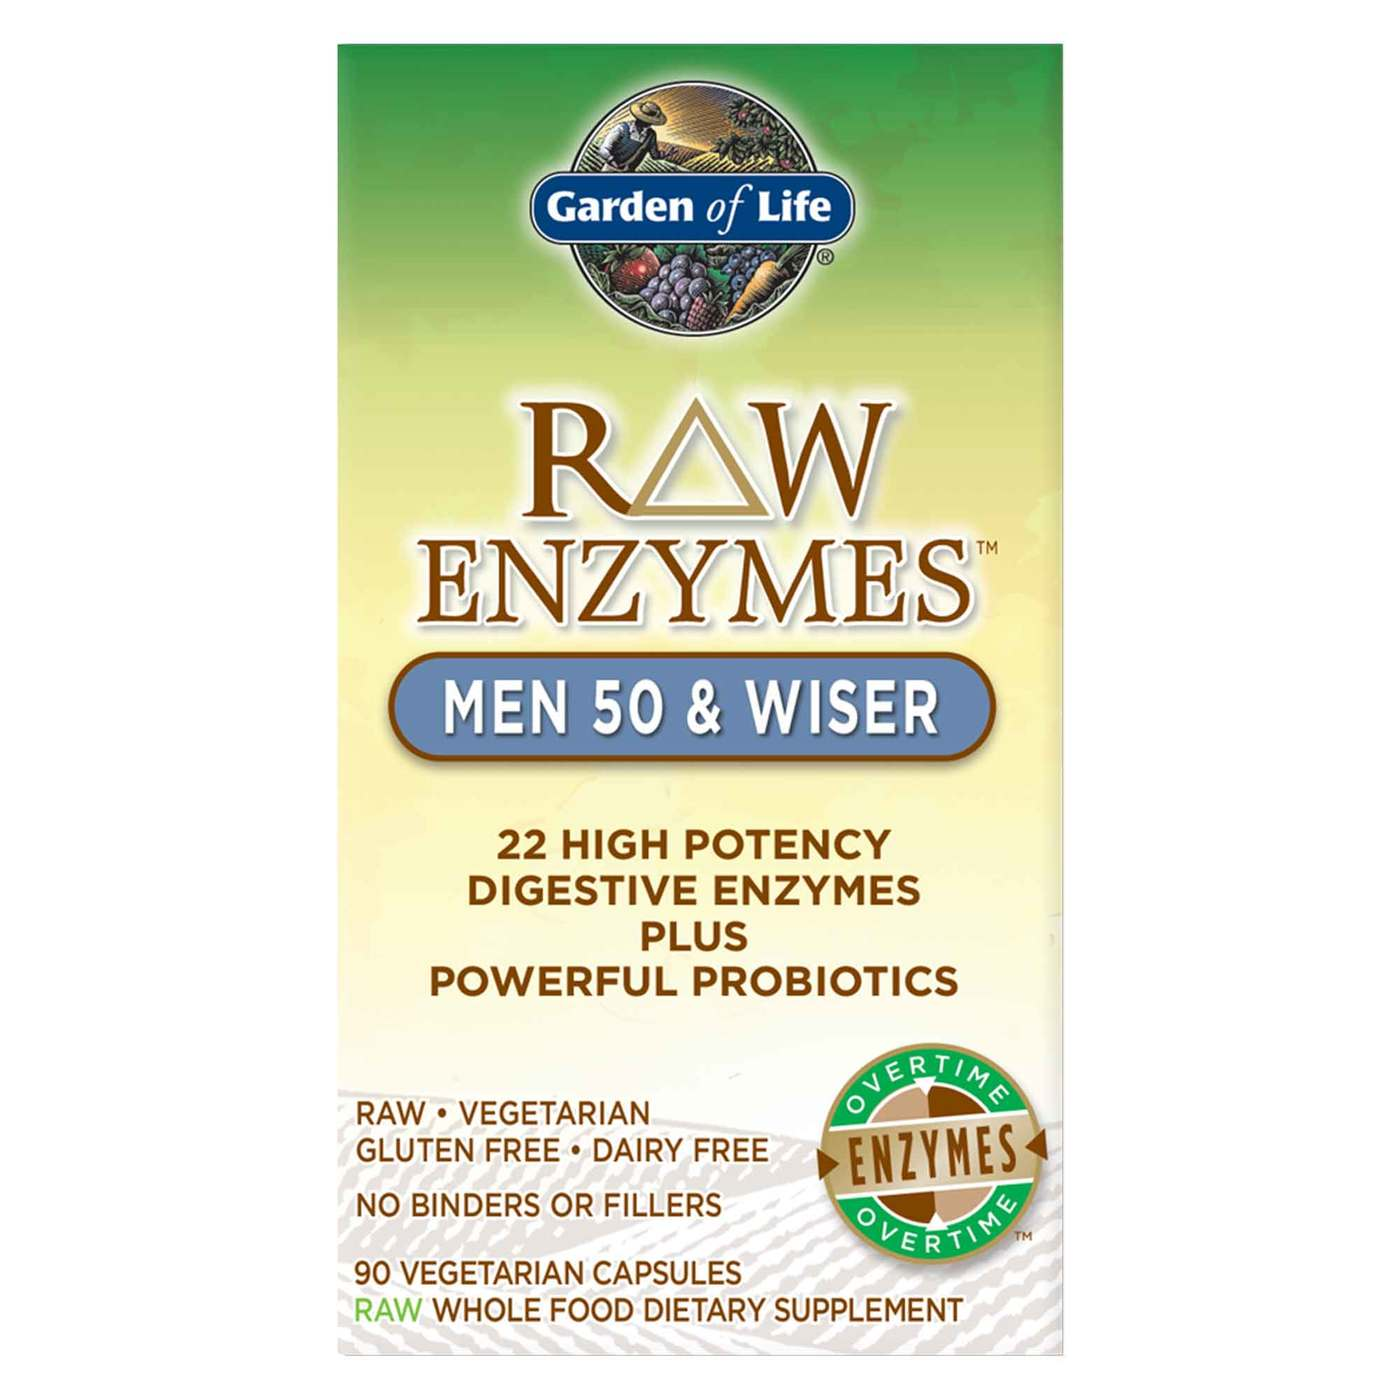 Garden of Life RAW Enzymes Men 50 and Wiser - 90 VCapsules